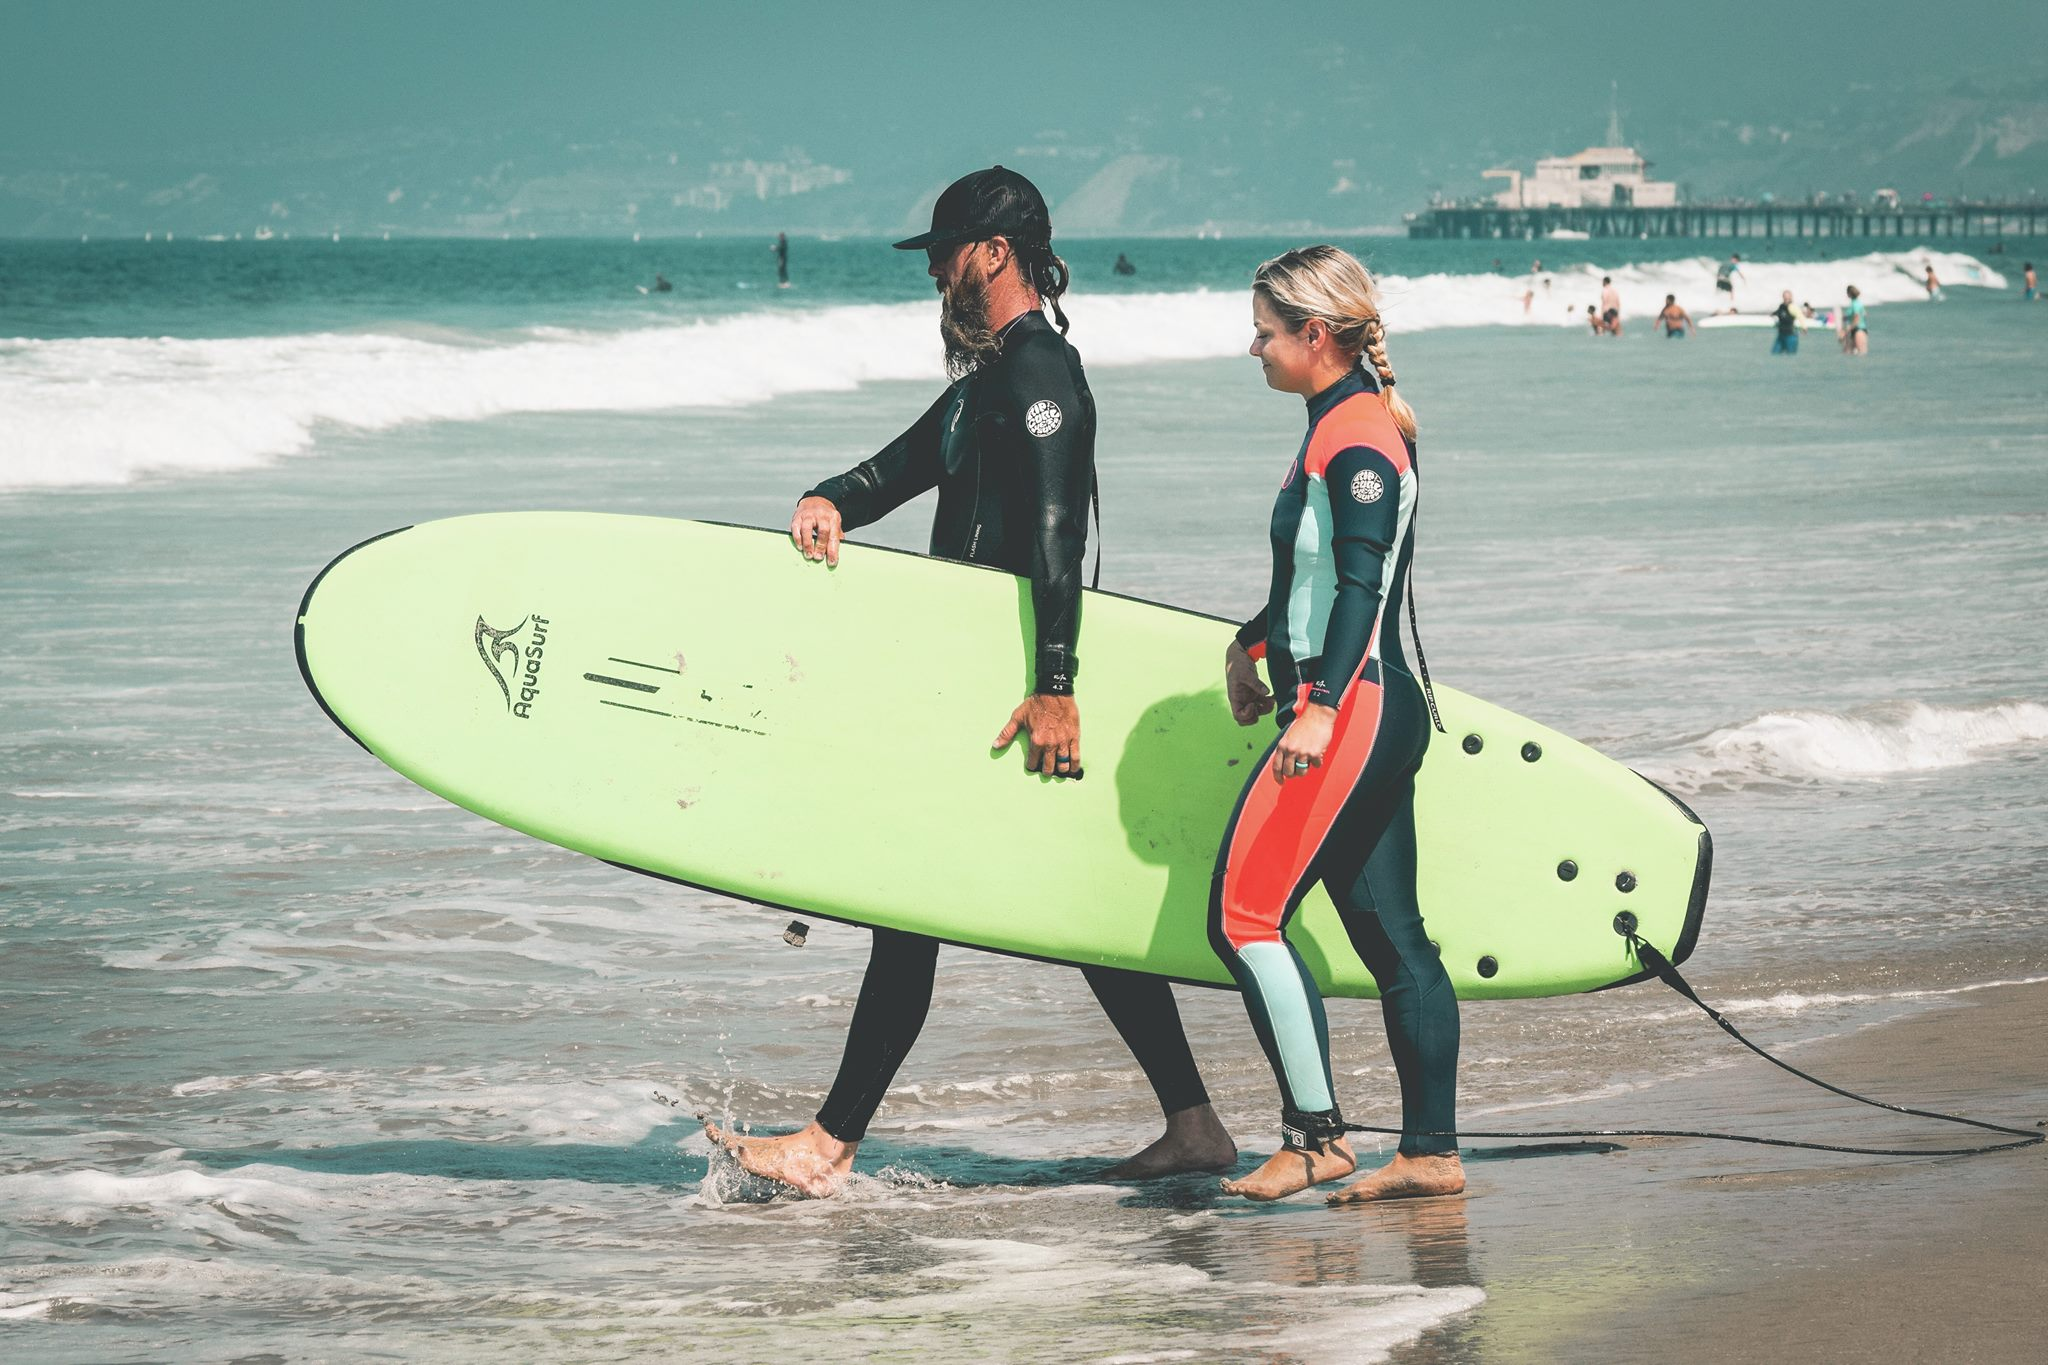 A new surfer and instructor walking into the surf with a neon green surfboard